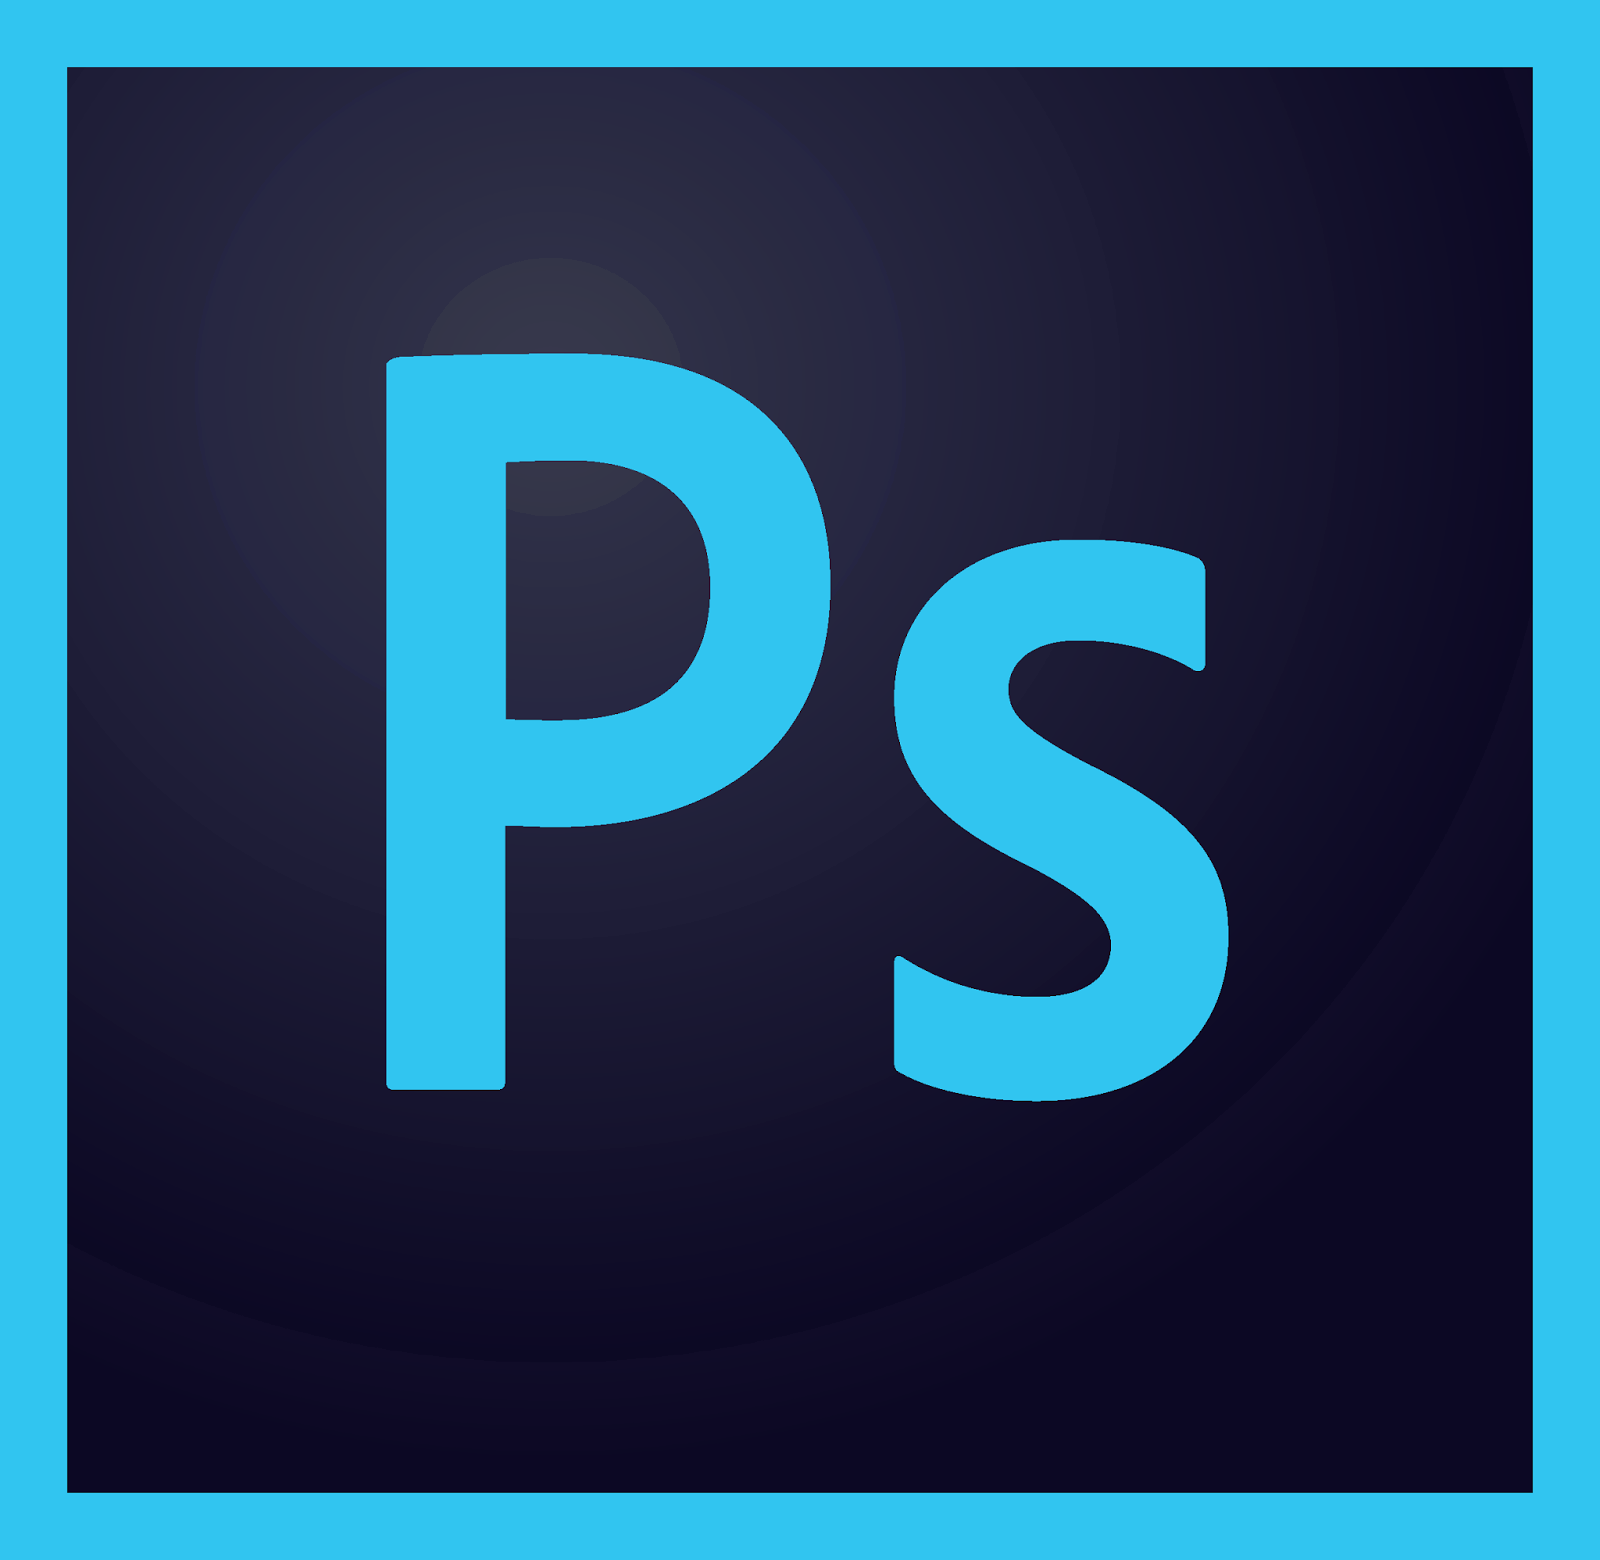 photoshop cc 2018 download highly compressed